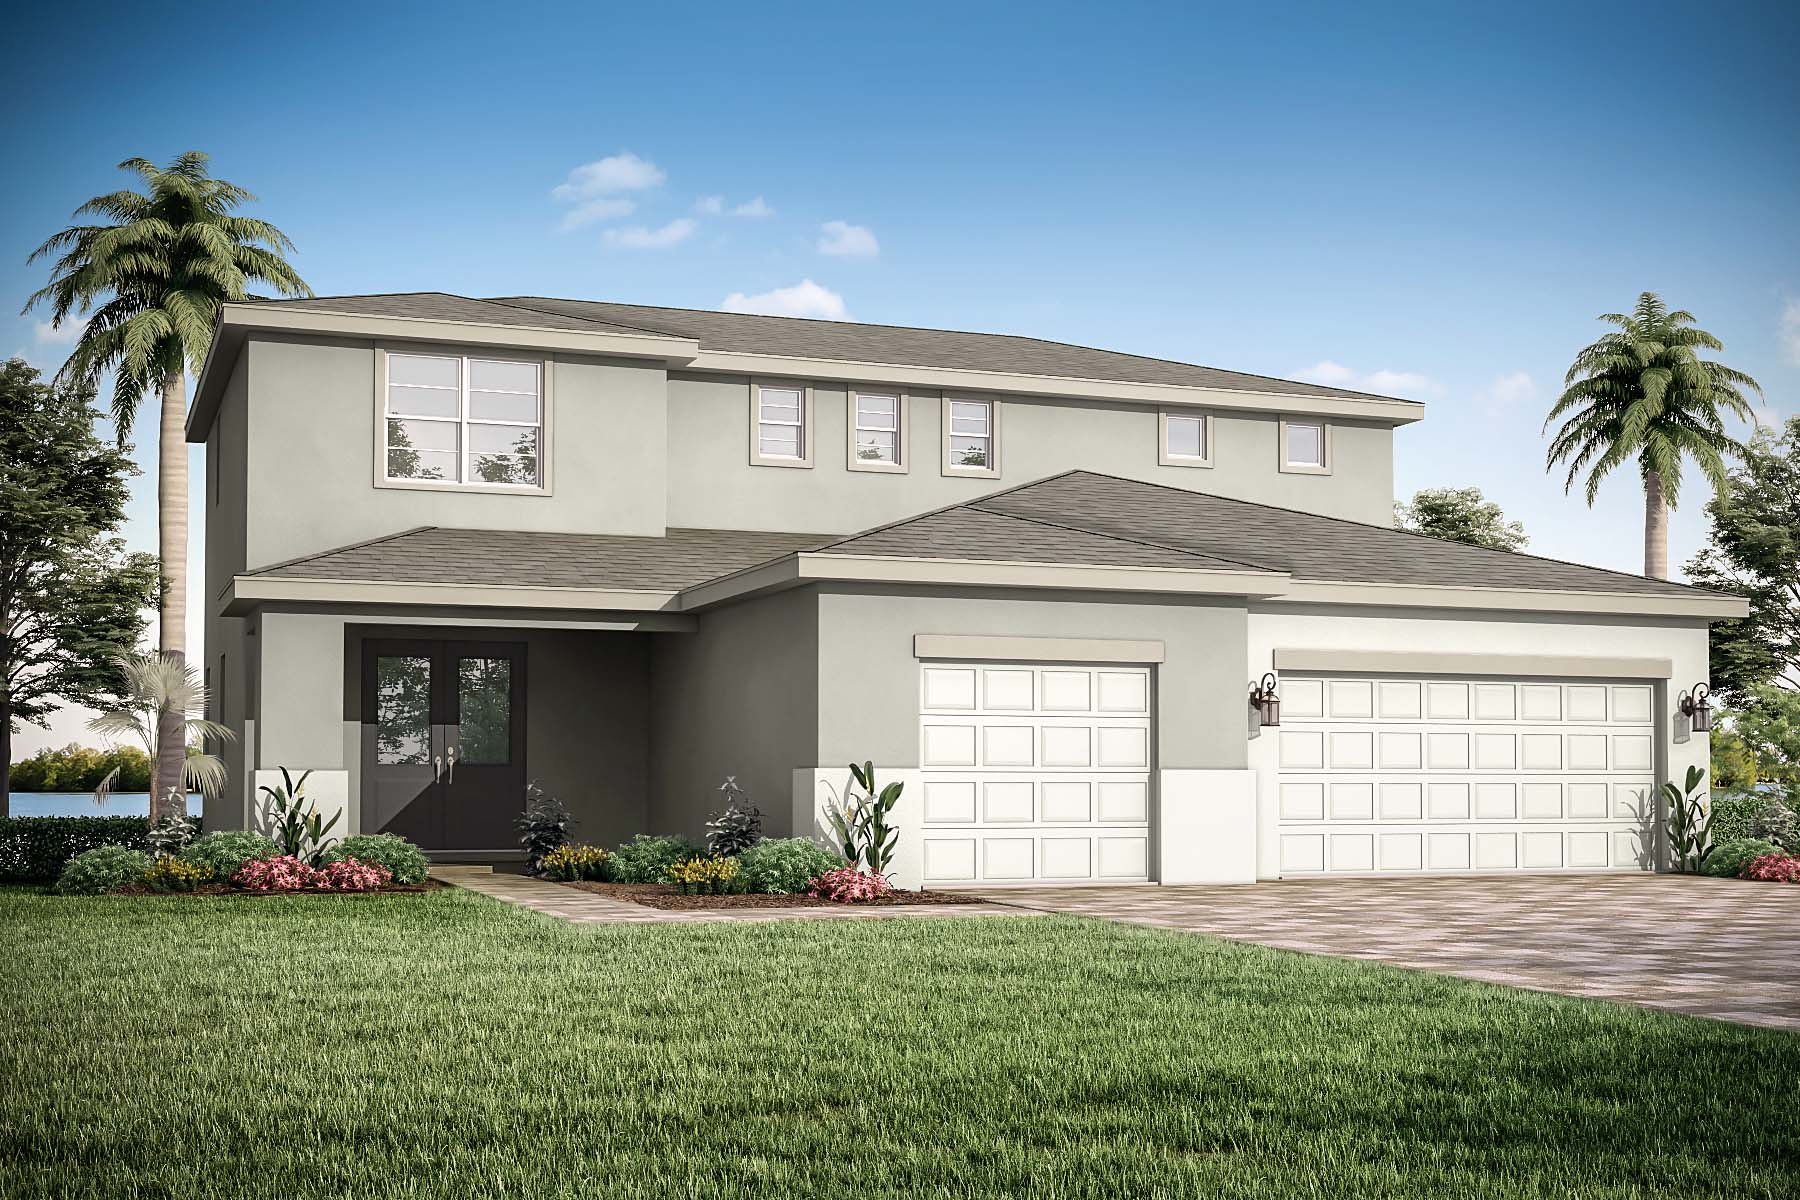 Golden Plan Elevation Front at Tradition - Manderlie in Port St. Lucie Florida by Mattamy Homes